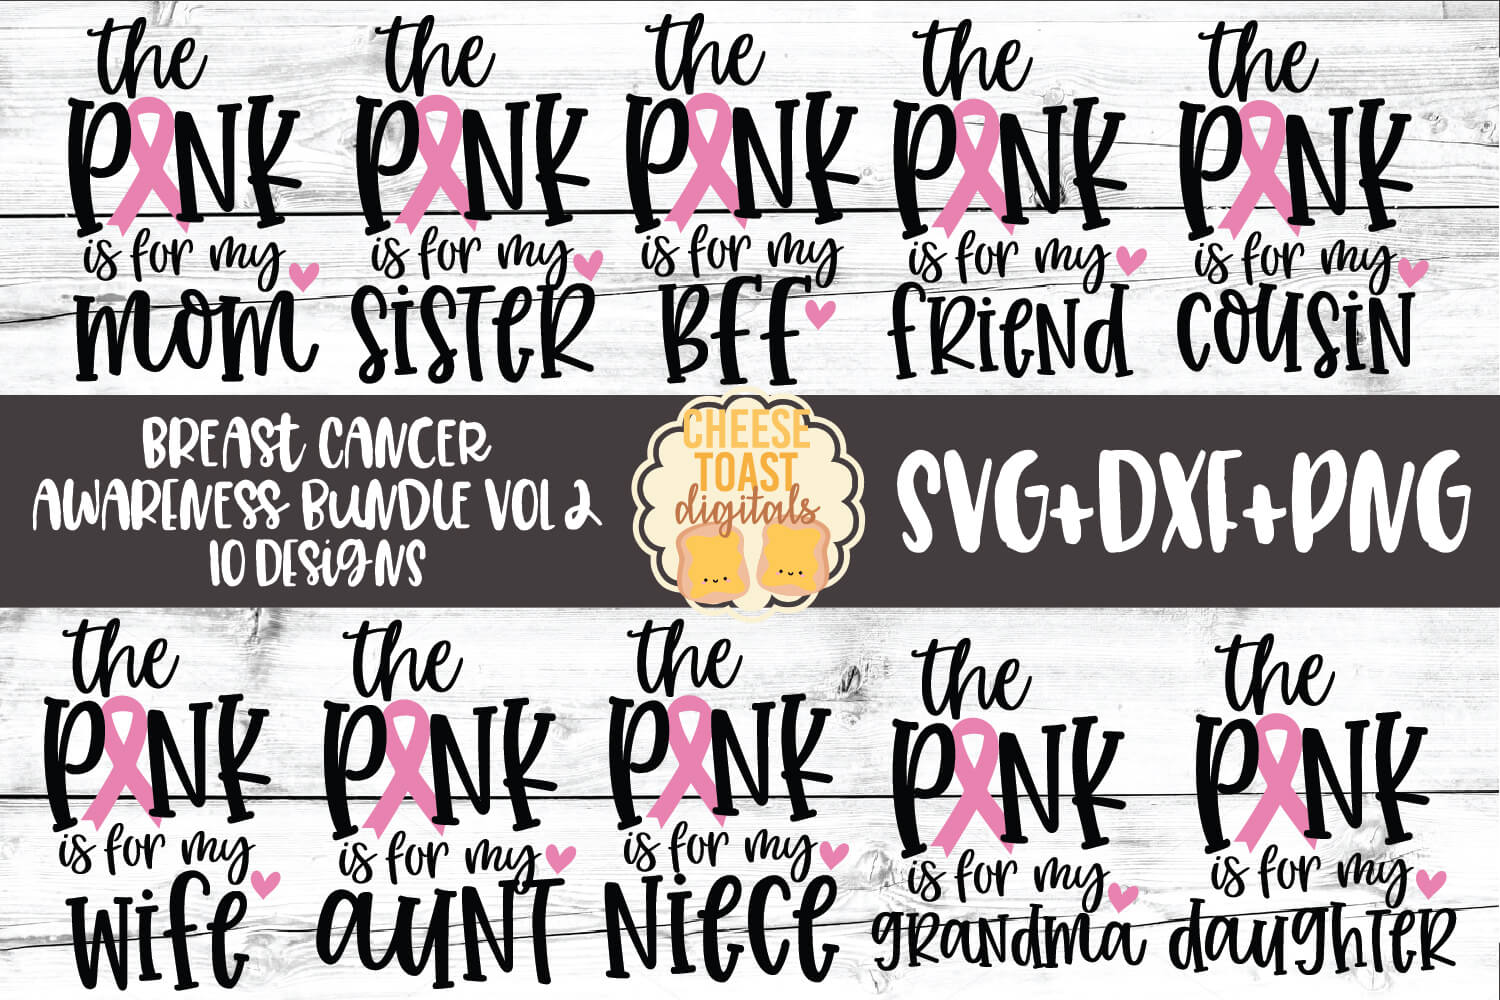 Breast Cancer Awareness Bundle Vol 2 - SVG PNG DXF Cut Files example image 1